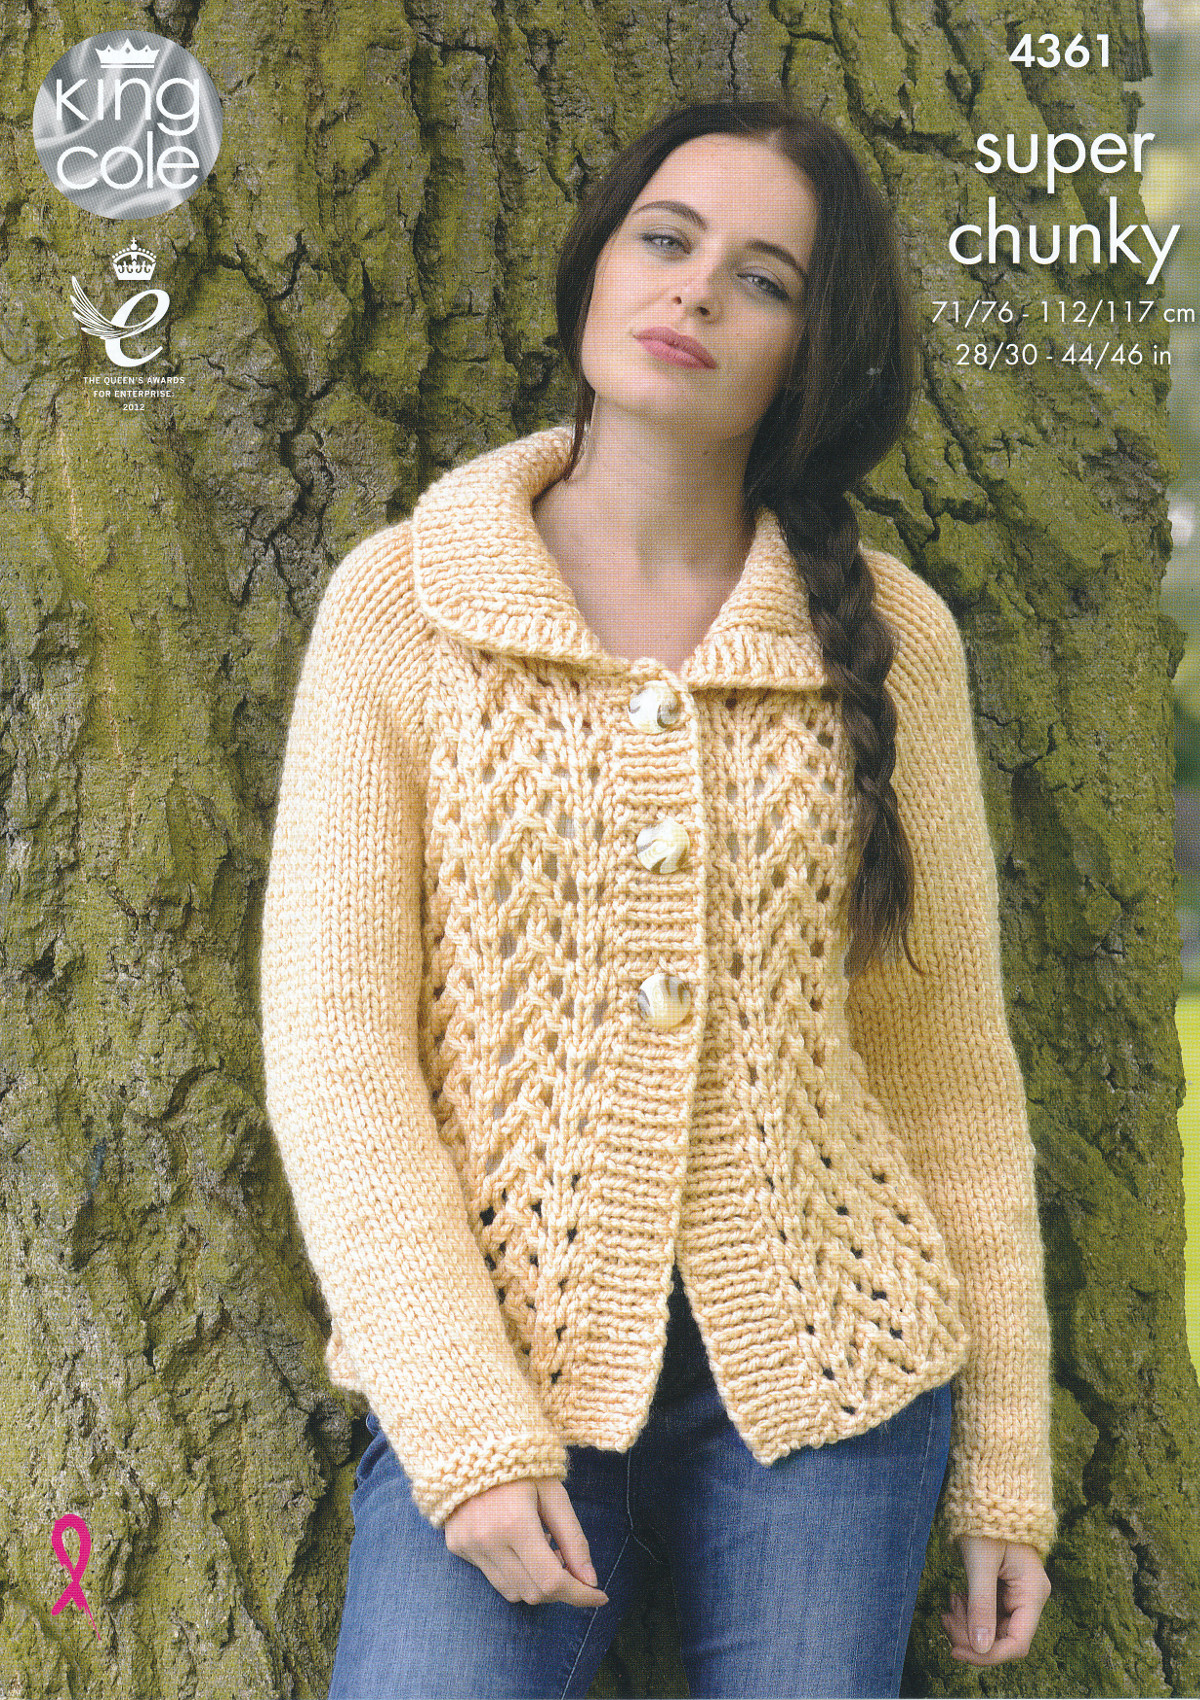 Lace effect sweater cardigan knitting pattern king cole ladies item description bankloansurffo Image collections